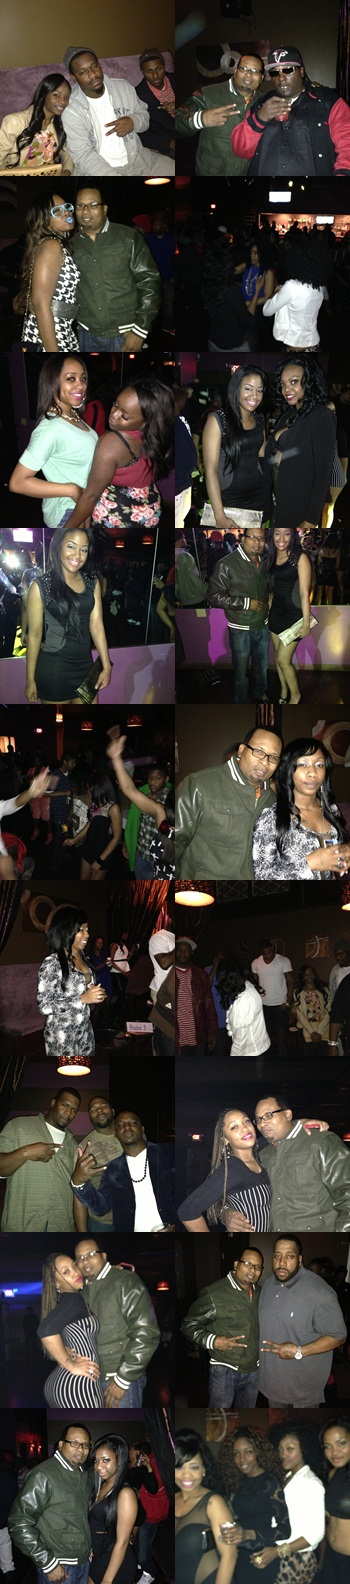 The Heat Magazine had a chance to check out Club Trois in Little Rock Arkansas